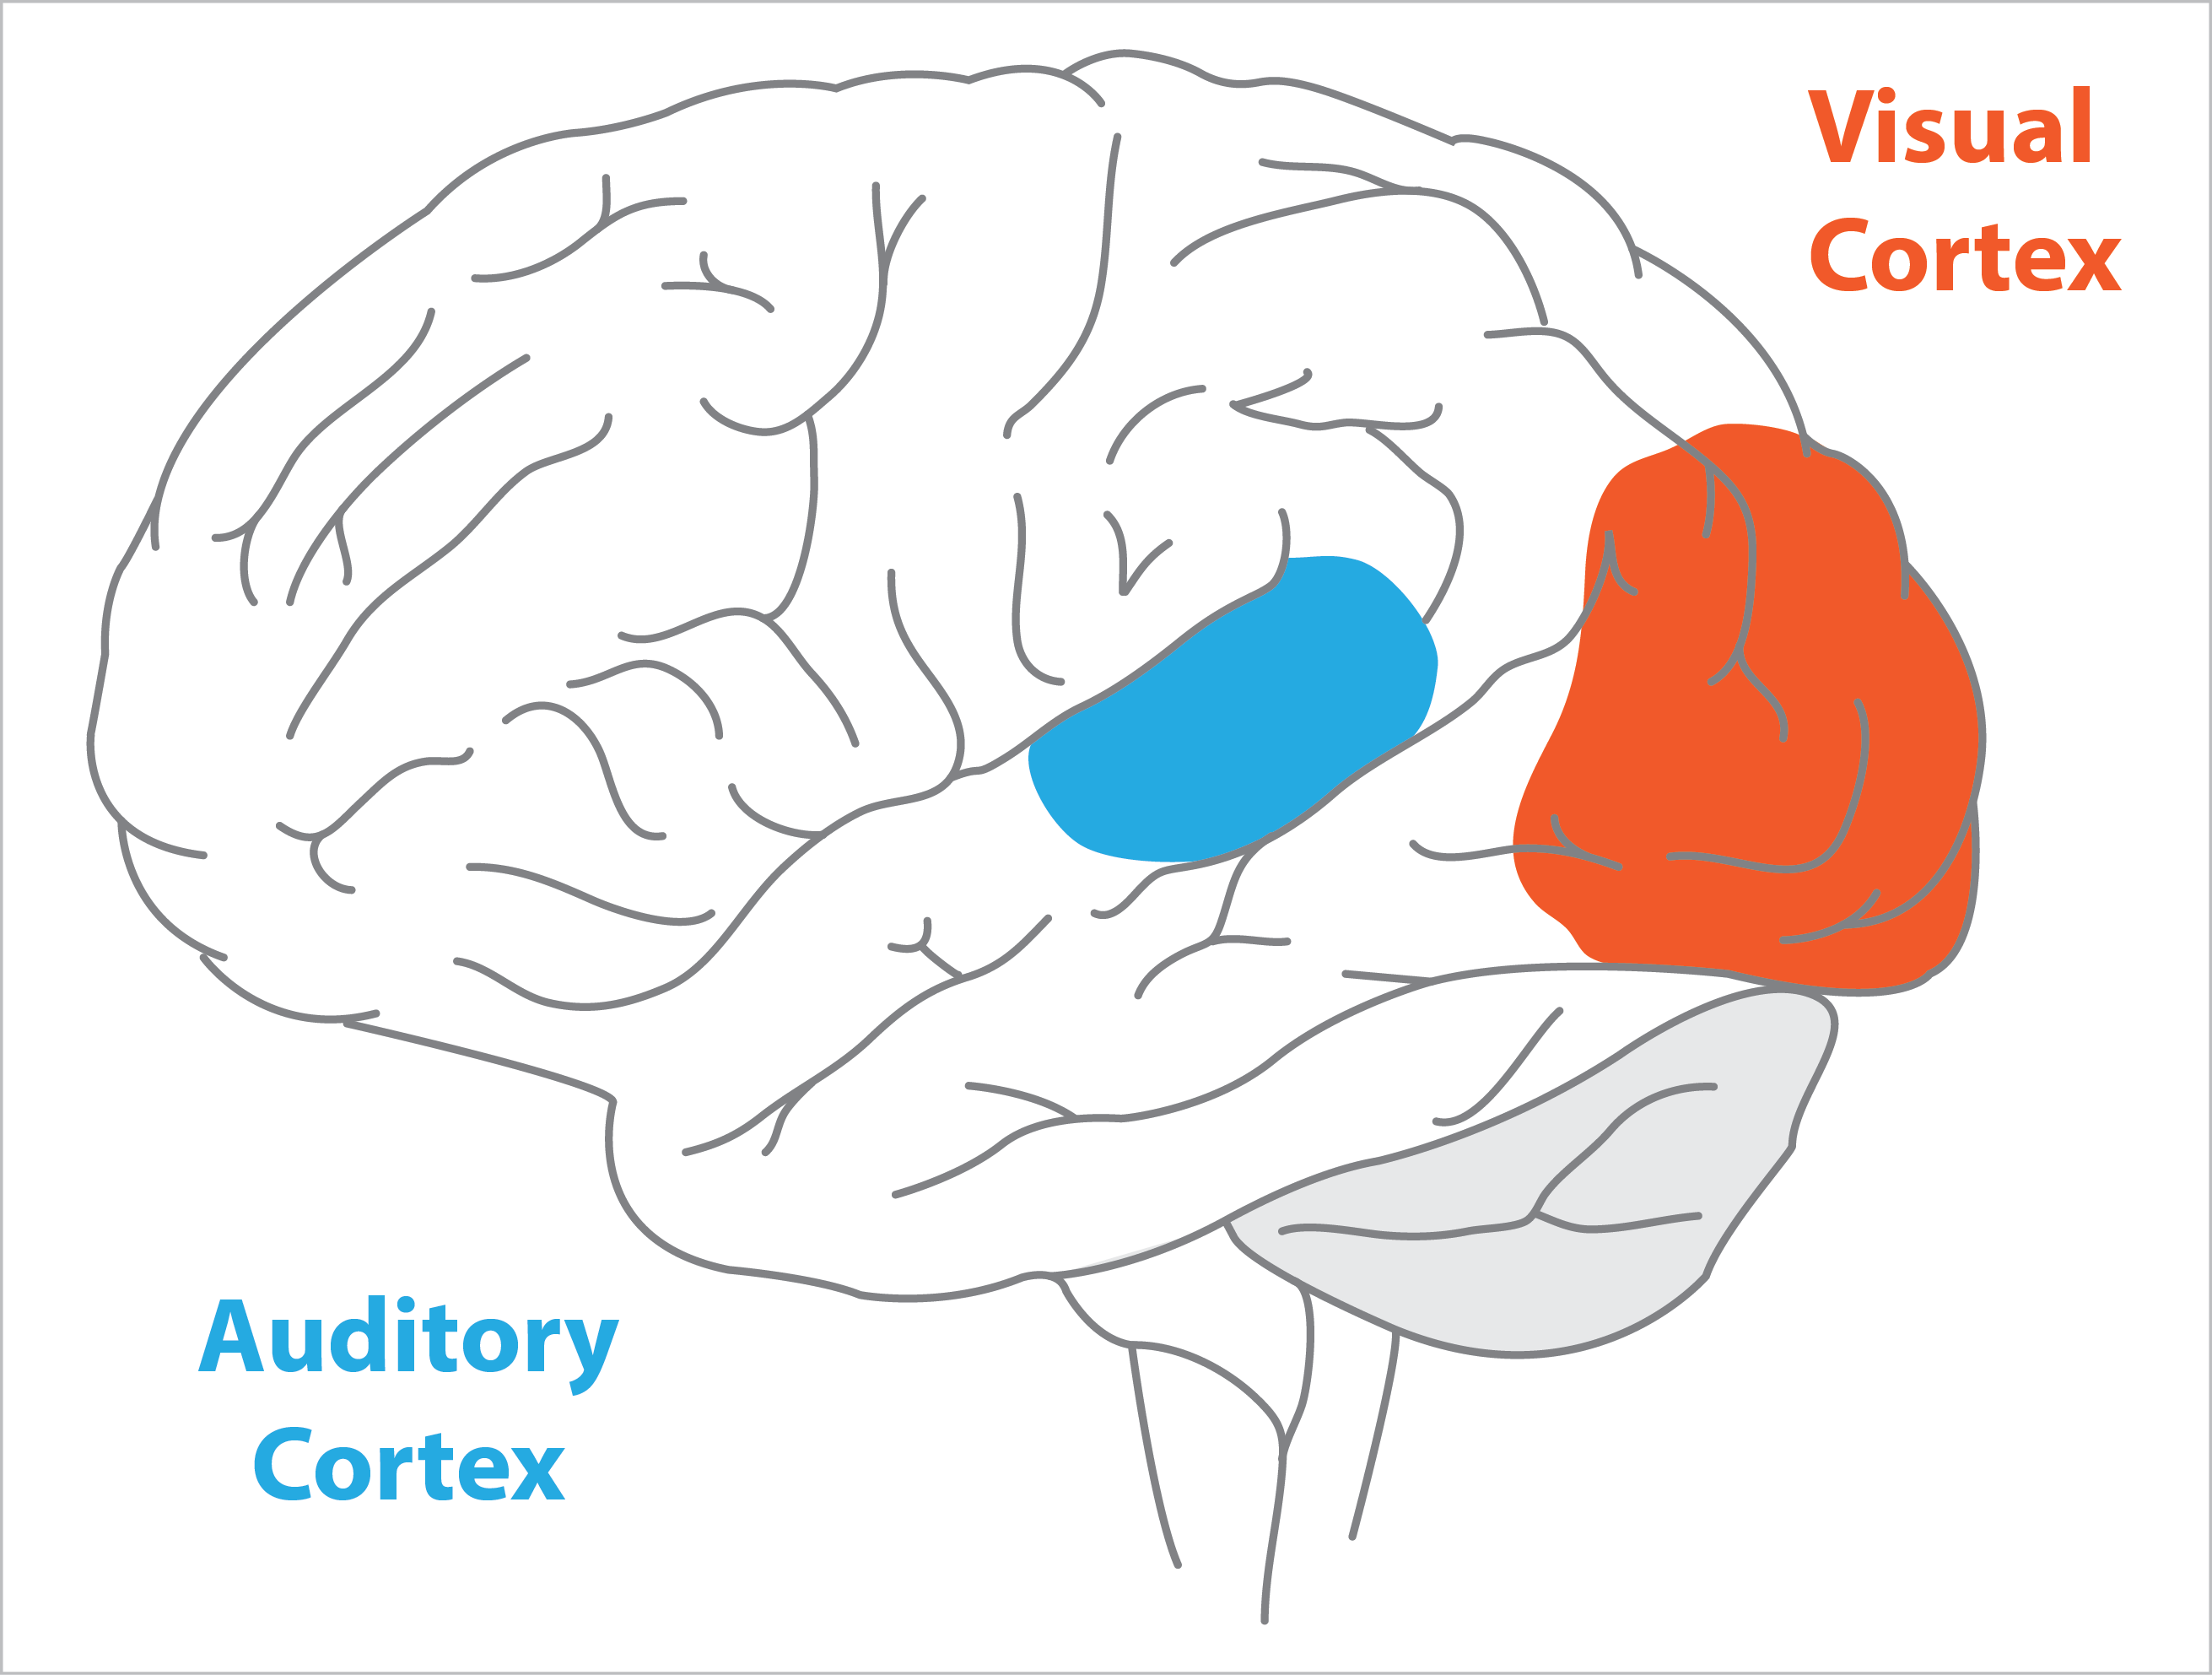 Auditory Cortex In Diagram Parts Auto Parts Catalog And